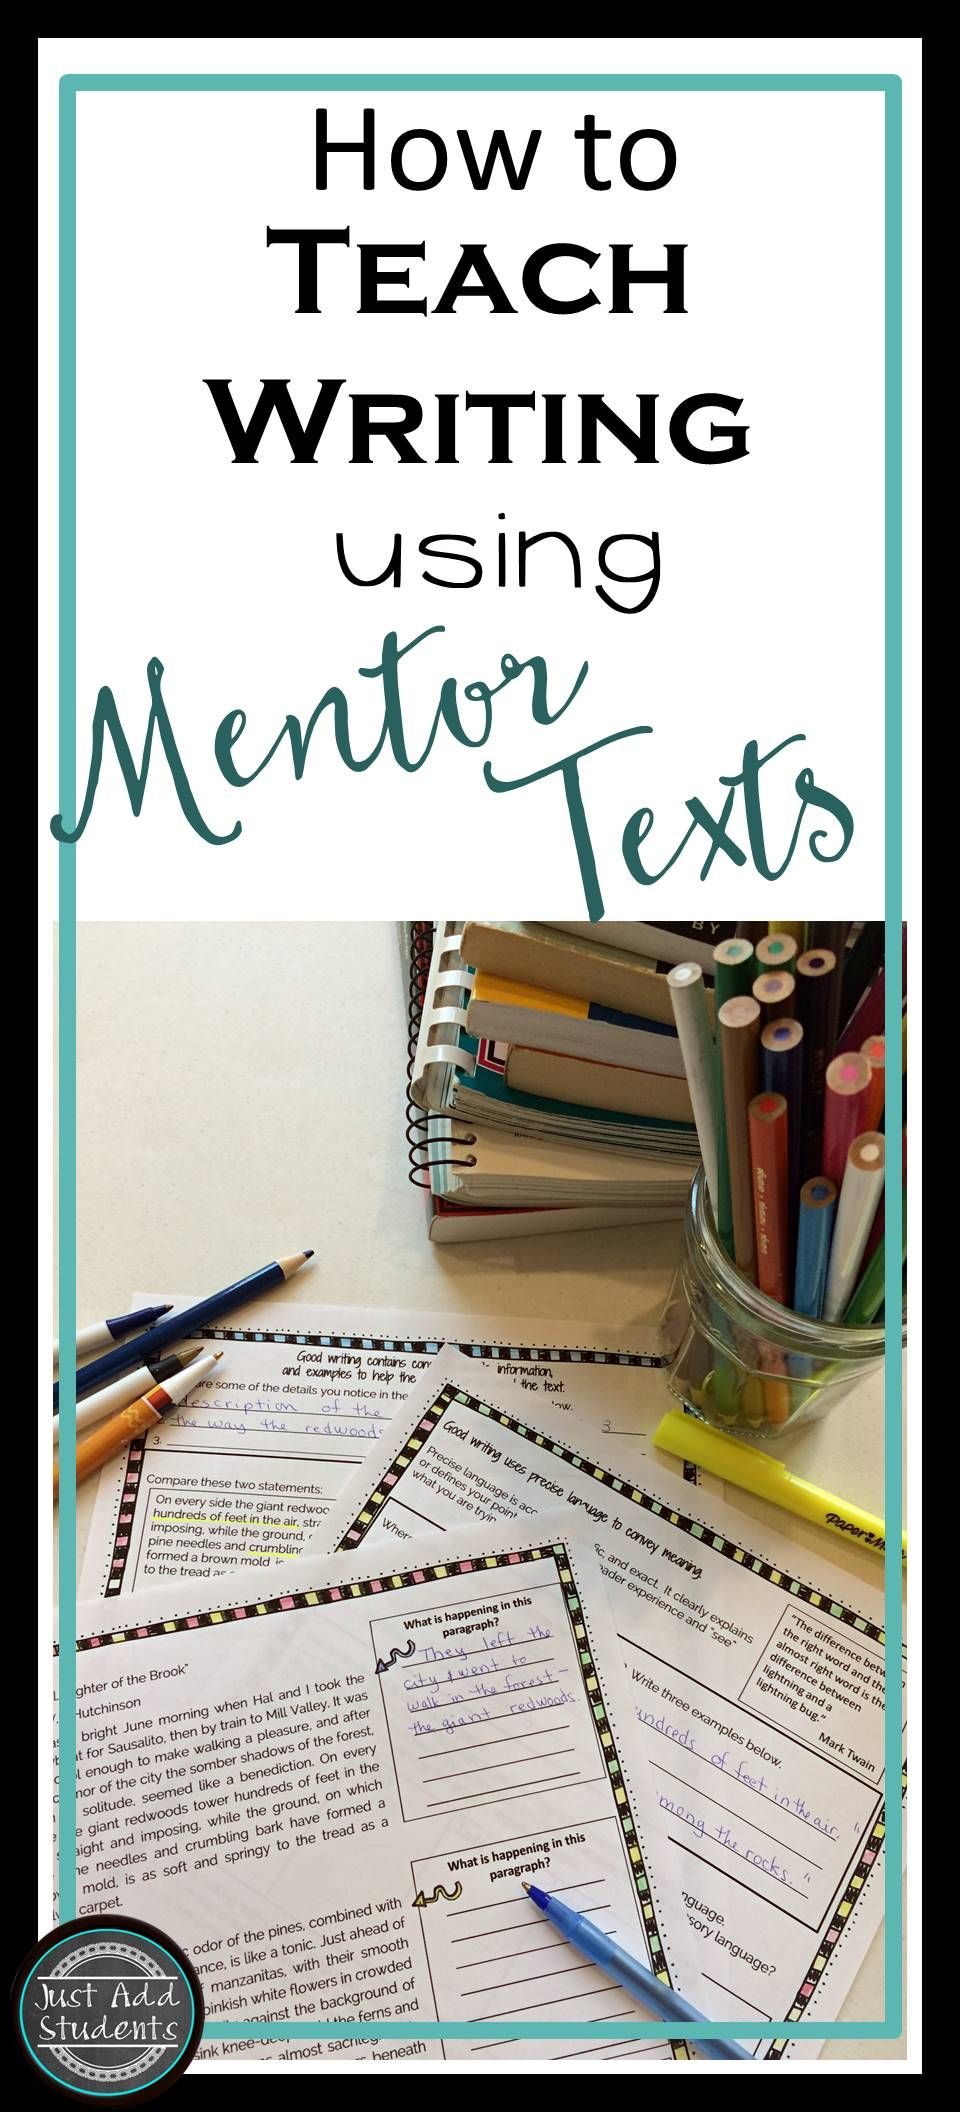 use mentor texts to show students what good writing is when use mentor texts to show students what good writing is when students analyze texts they can practice writing skills and model sentences and paragraphs